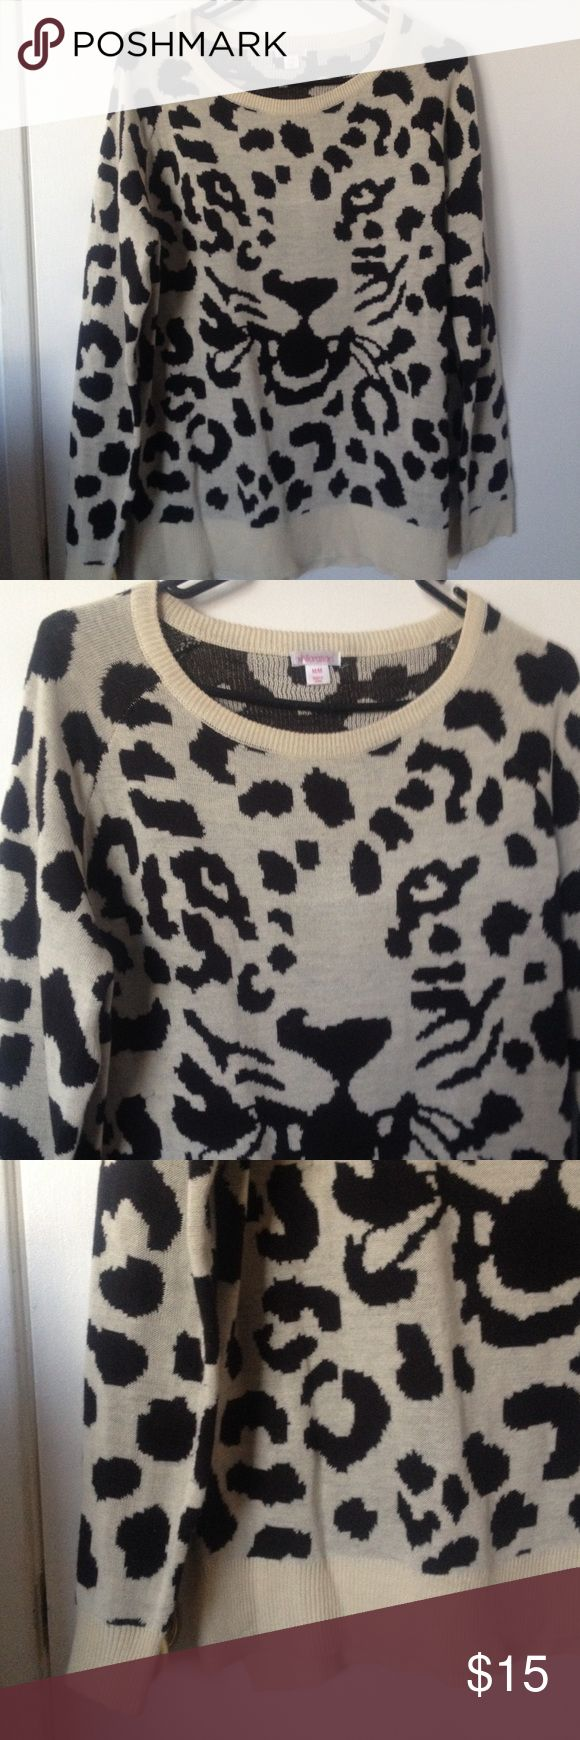 Xhilaration Leopard Pullover Leopard sweater jumper pullover..Xhilaration from Target.. Size M.. Worn once.. Black and cream color Xhilaration Sweaters